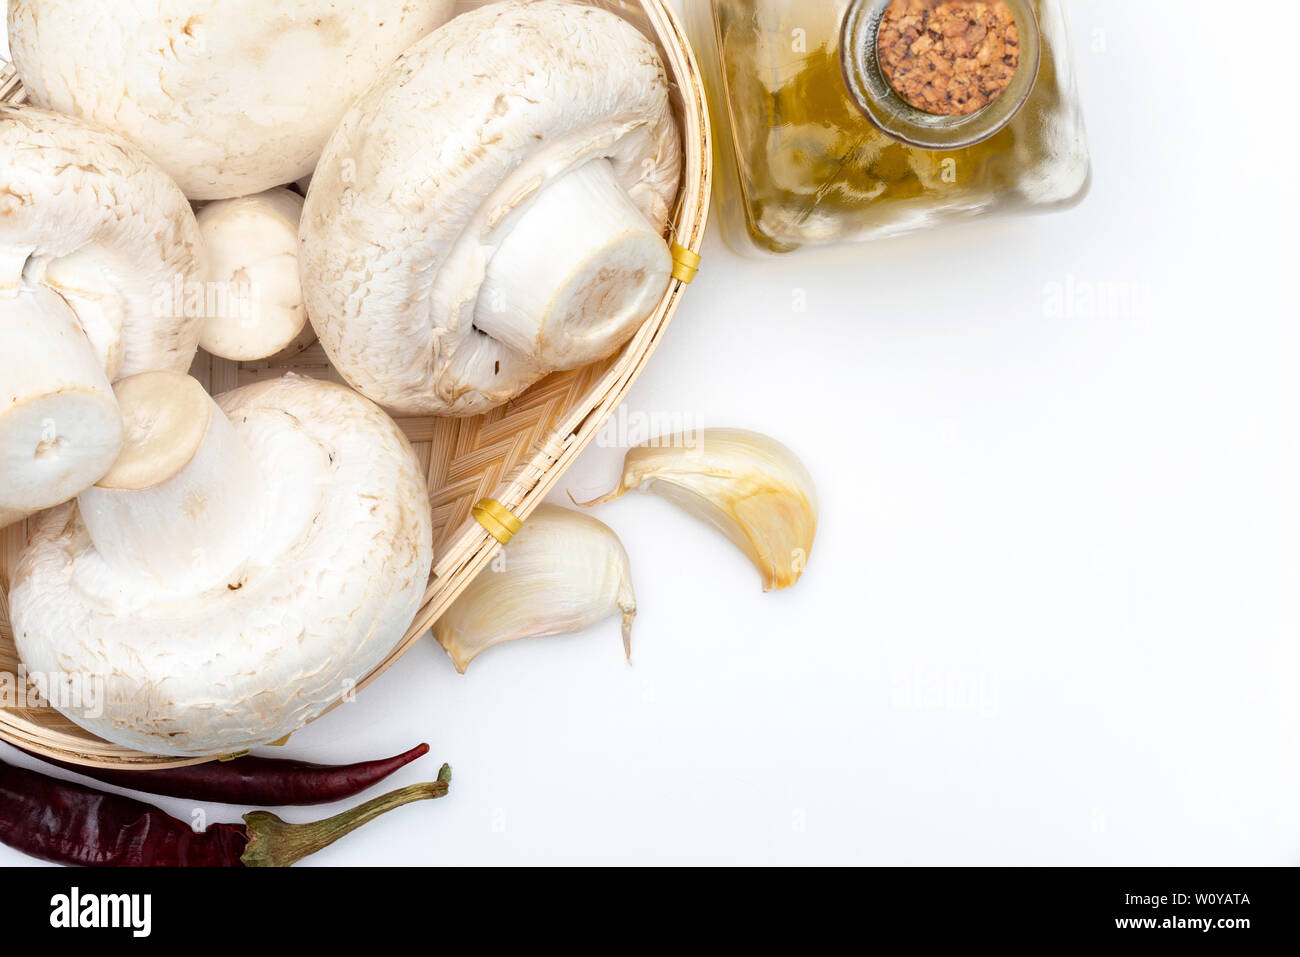 Basket of mushrooms (champignon, cut feet, Agaricus Bisporus) raw (uncooked). With several ingredients (olive oil, garlic and chilli pepper). White ba - Stock Image